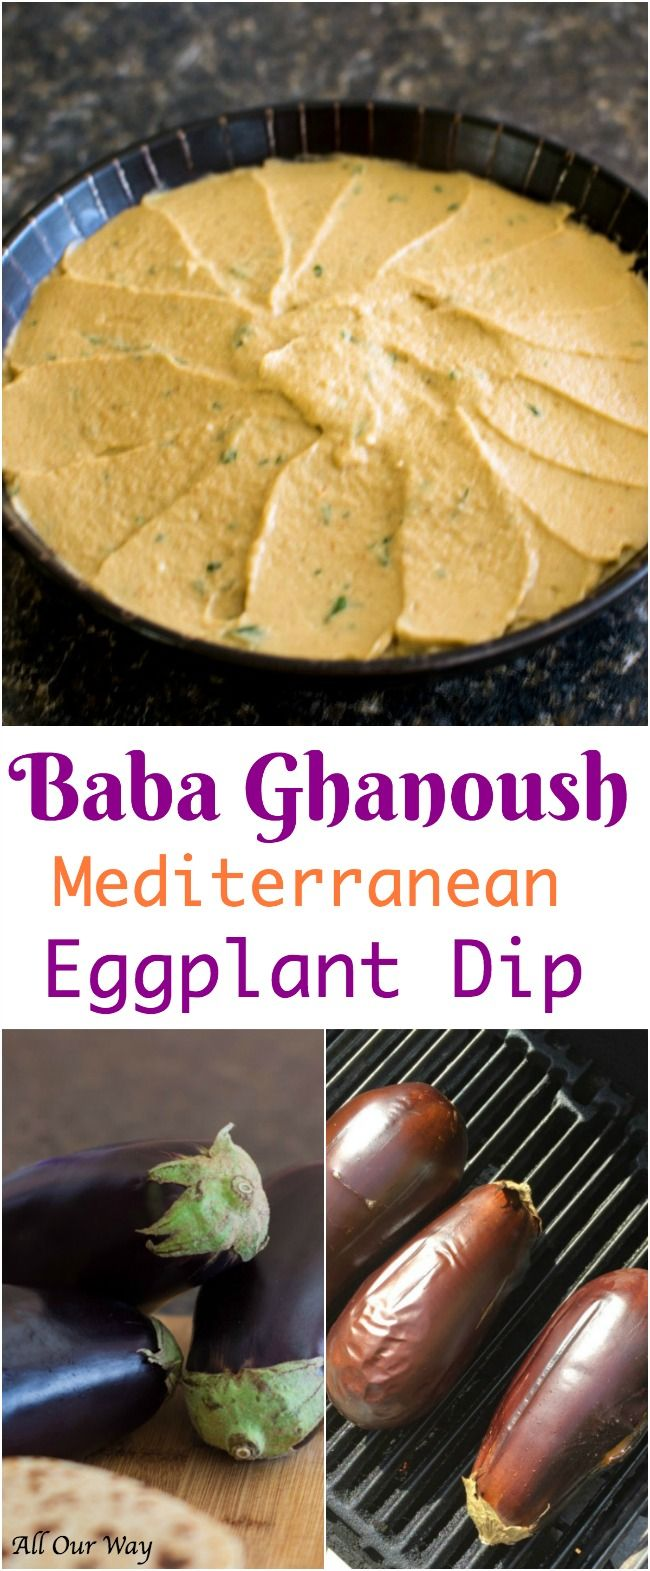 Baba Ghanoush is a Mediterranean eggplant dip that has a smokey, garlicky, nutty flavor that is delicious slathered on flatbread.